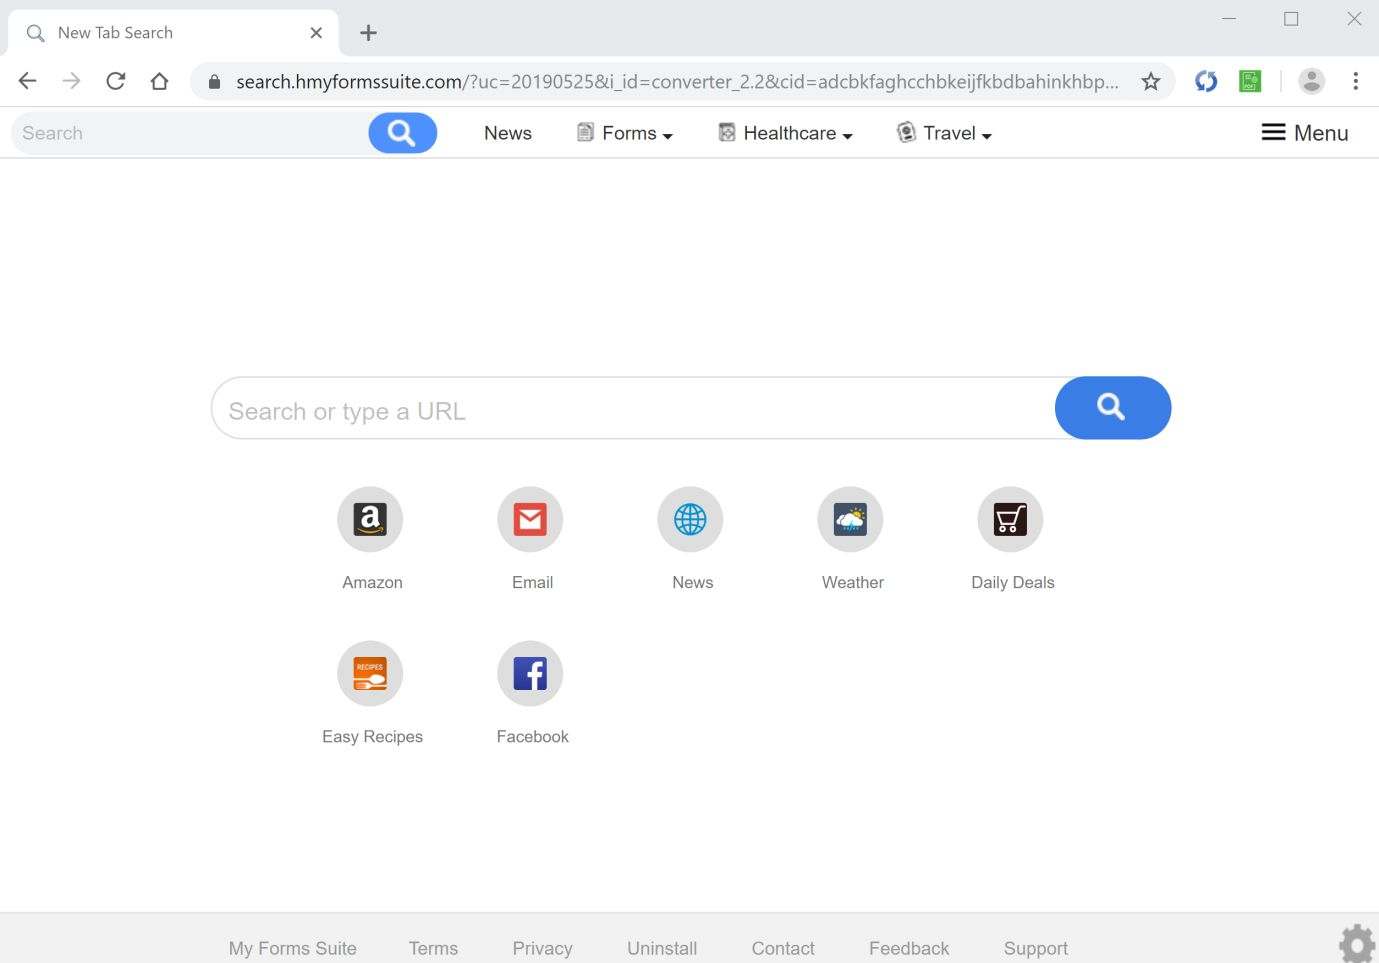 Image: Chrome browser is redirected to search.hmyformssuite.com